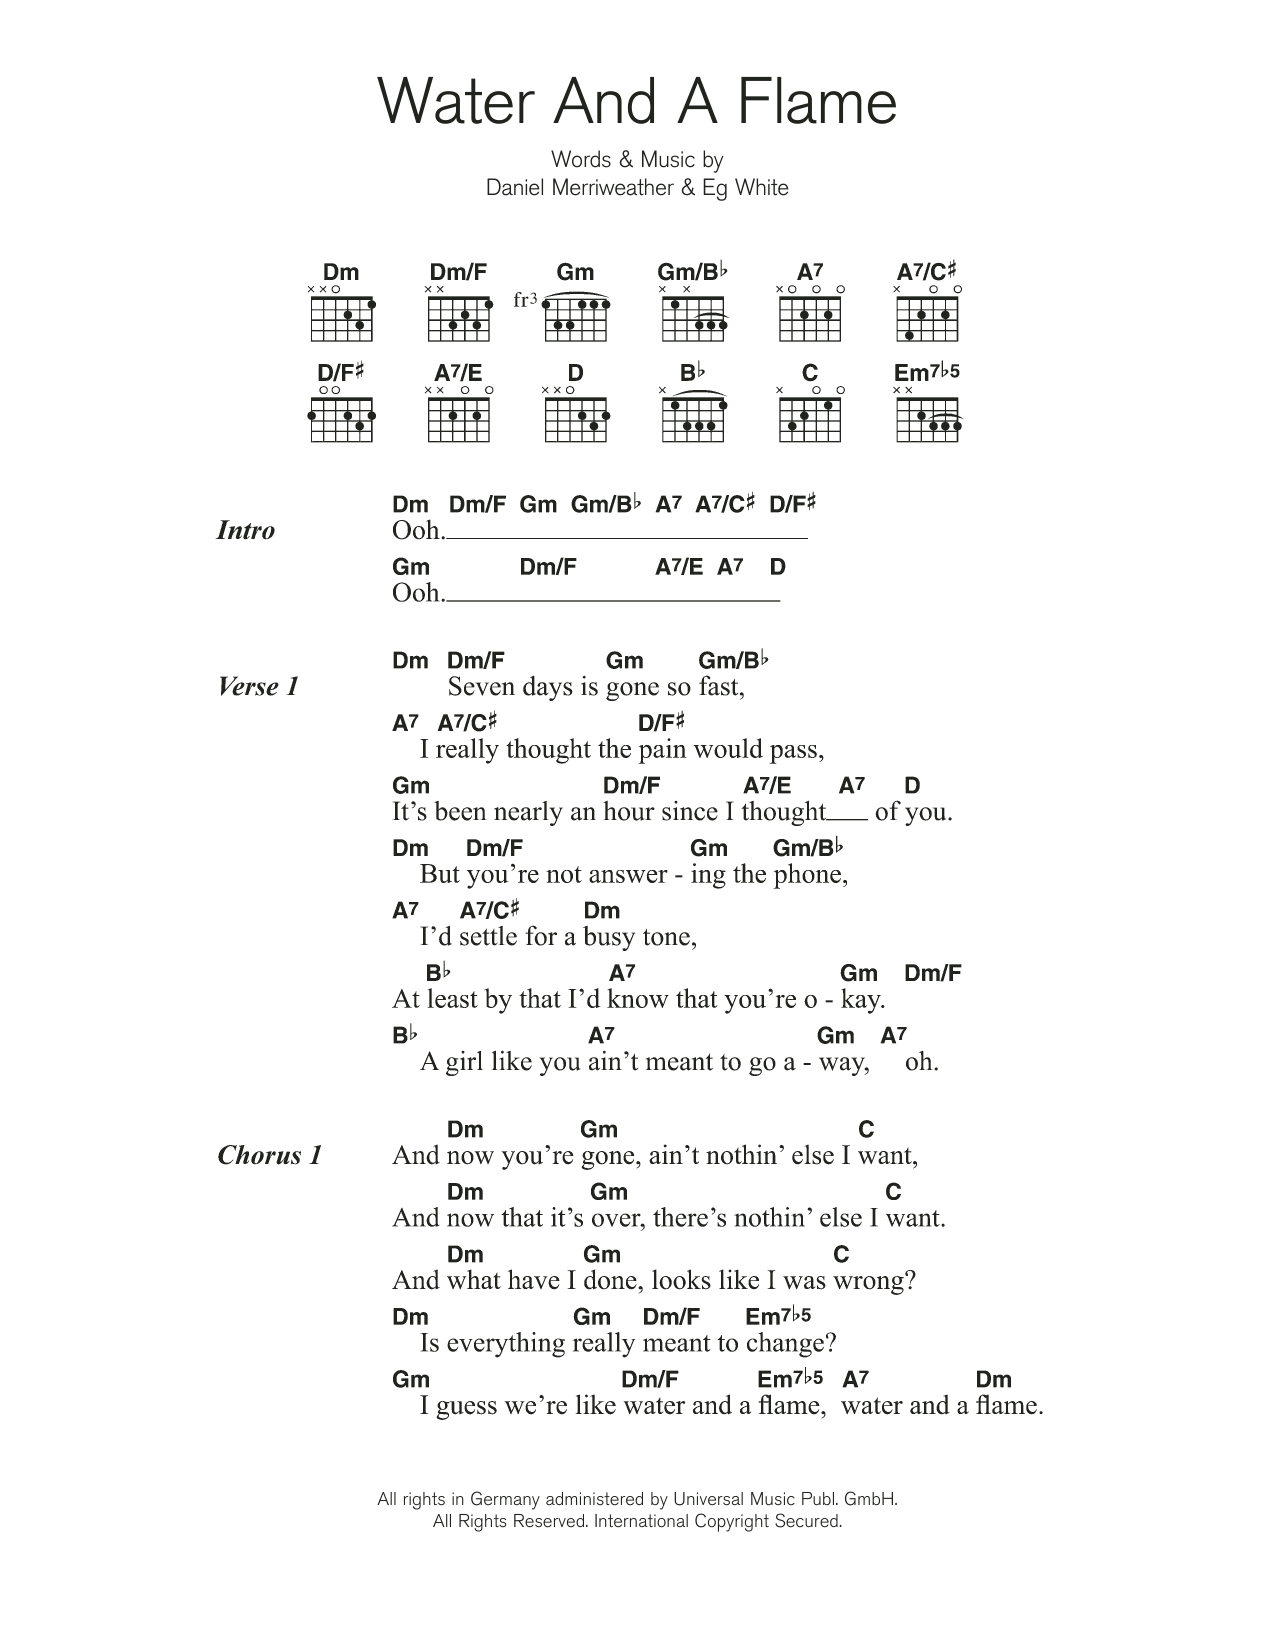 Water And A Flame (featuring Adele) Sheet Music